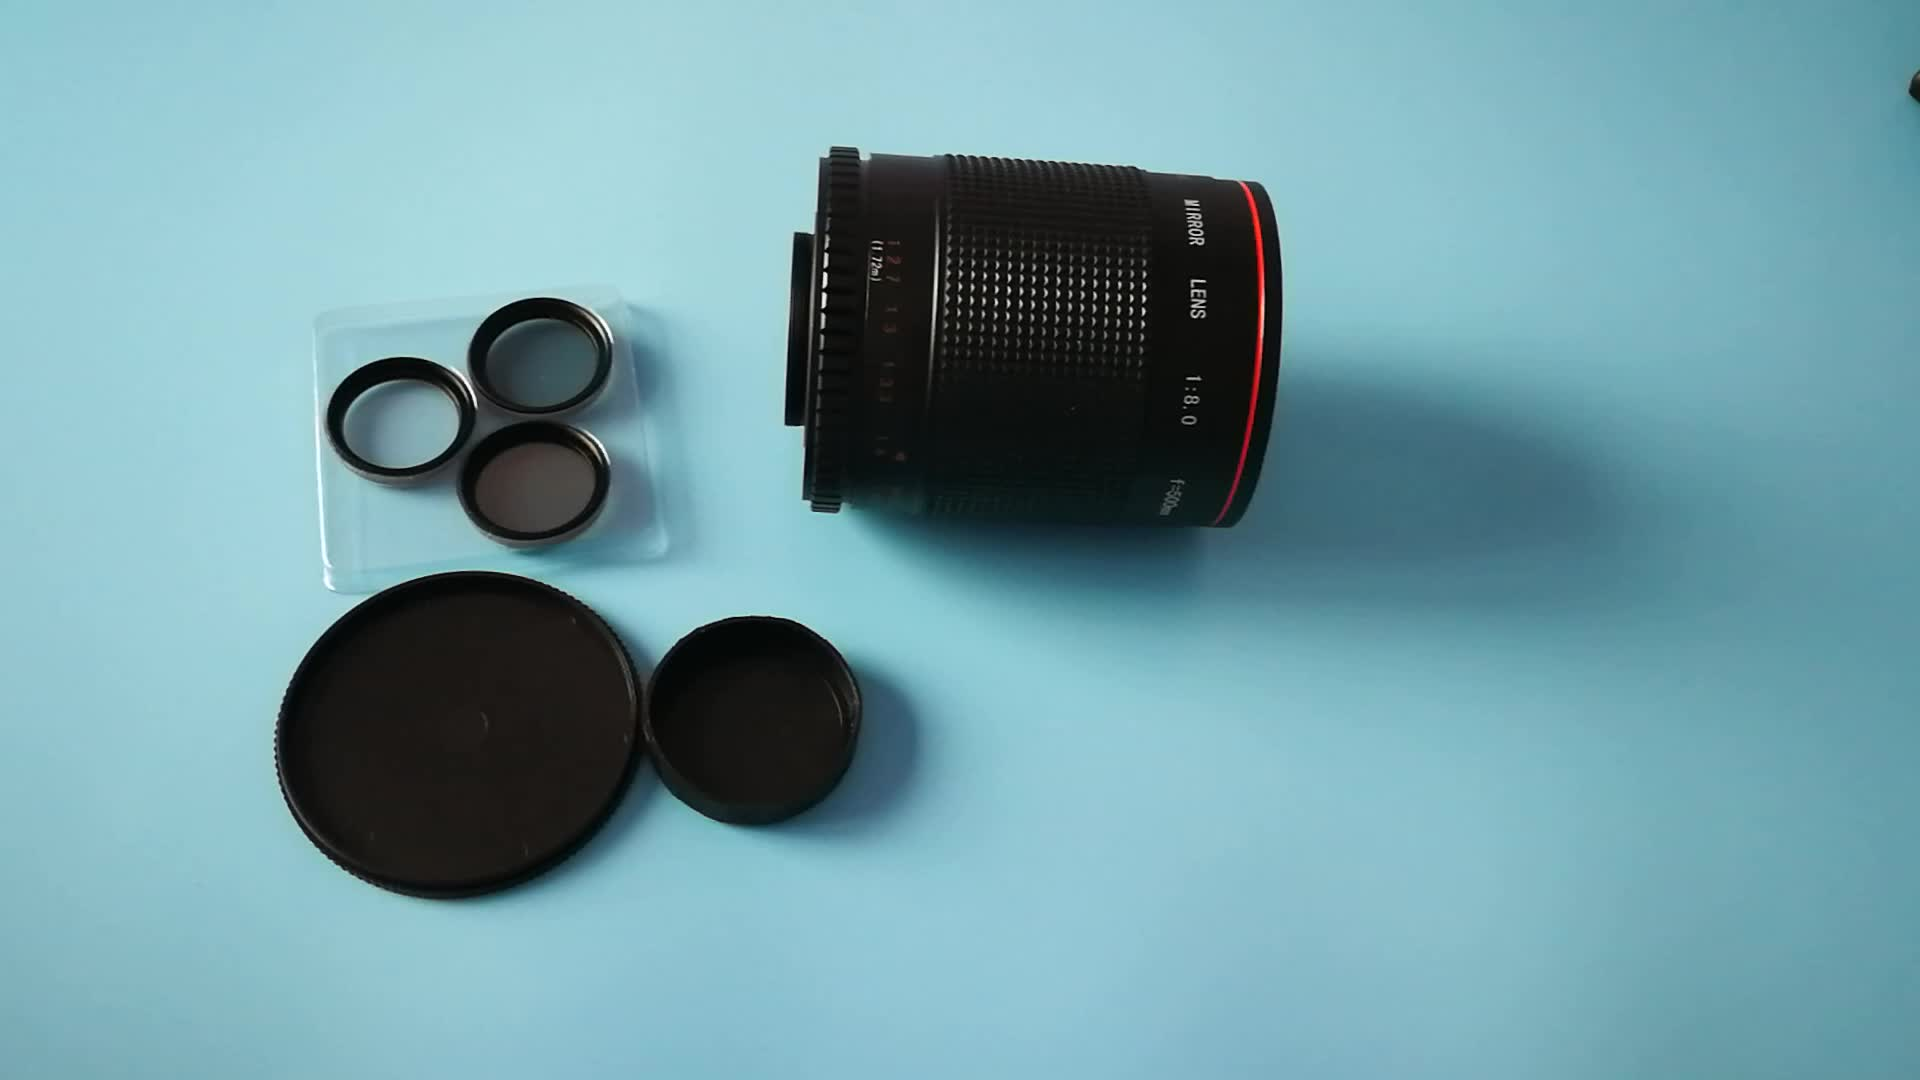 Assembly Lenses Camera lens CCTV with C-Mount S-Mount